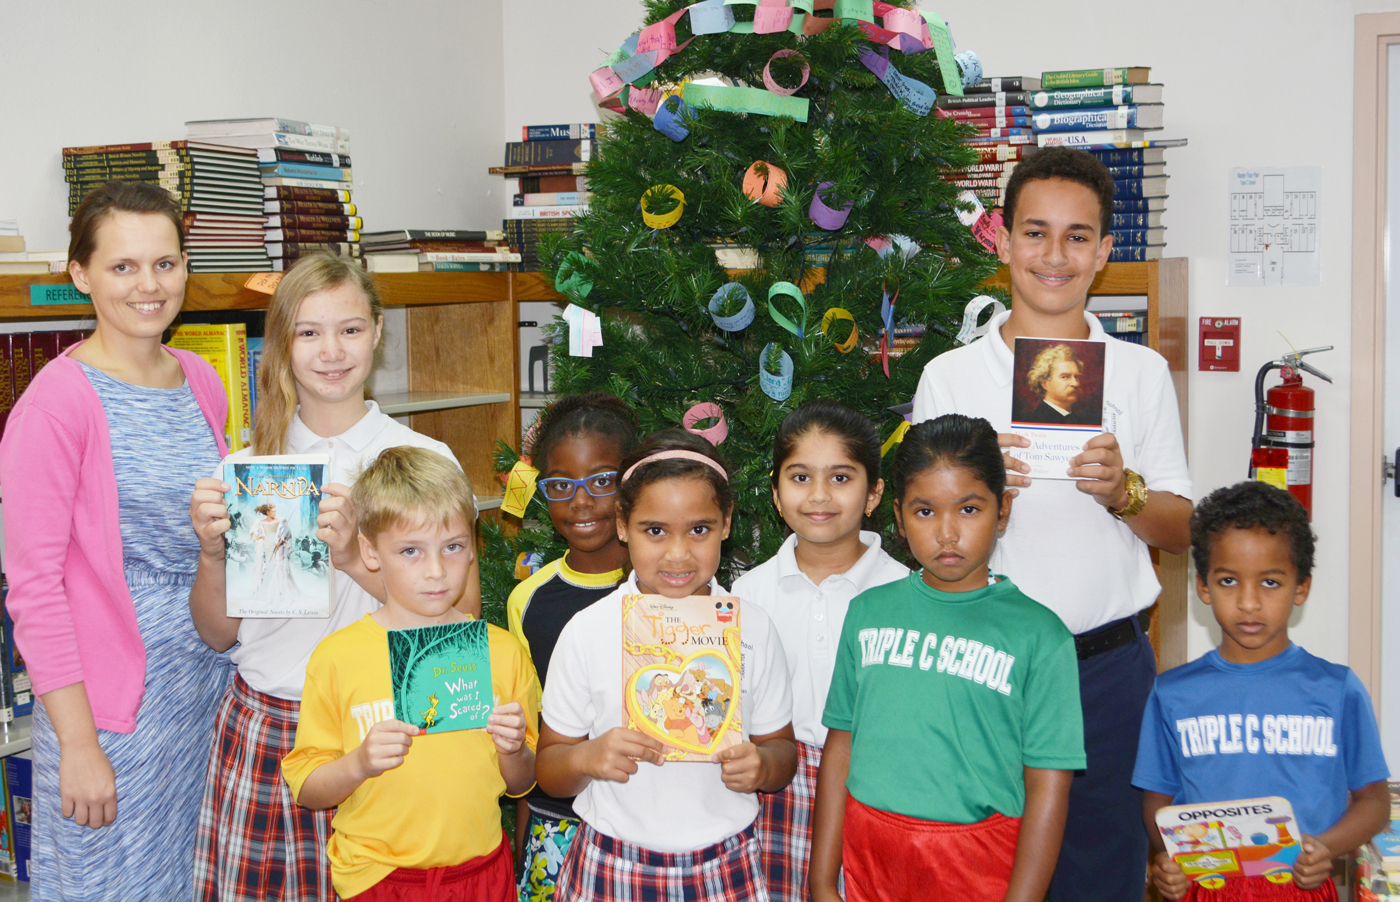 Triple C Students Give Gift Of Reading To The George Town pertaining to Triple C School